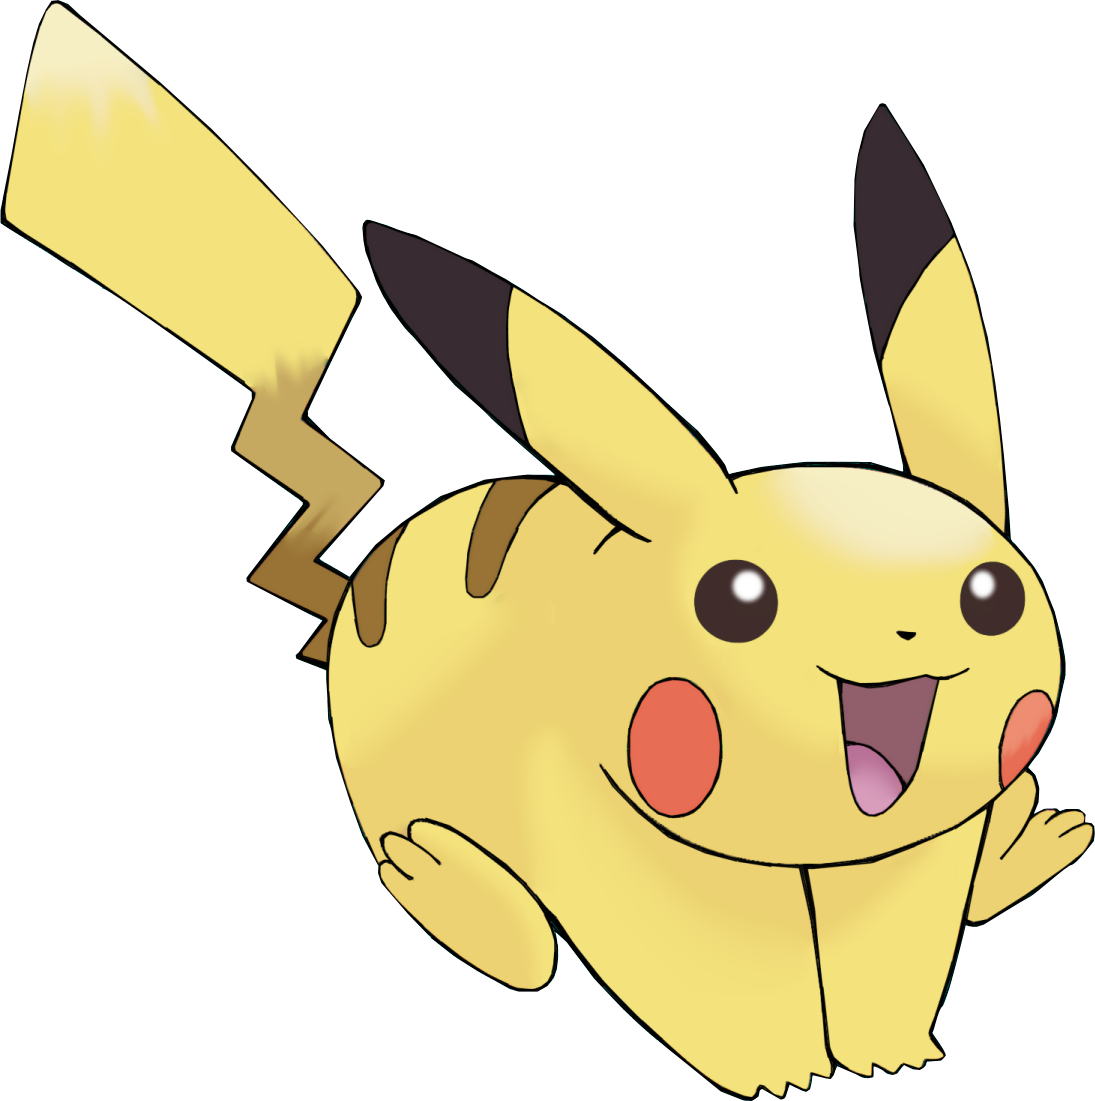 Pokemon Png Image Pikachu Running To The Right Png Download Transparent Png Image Pikachu Pokemon Game Store